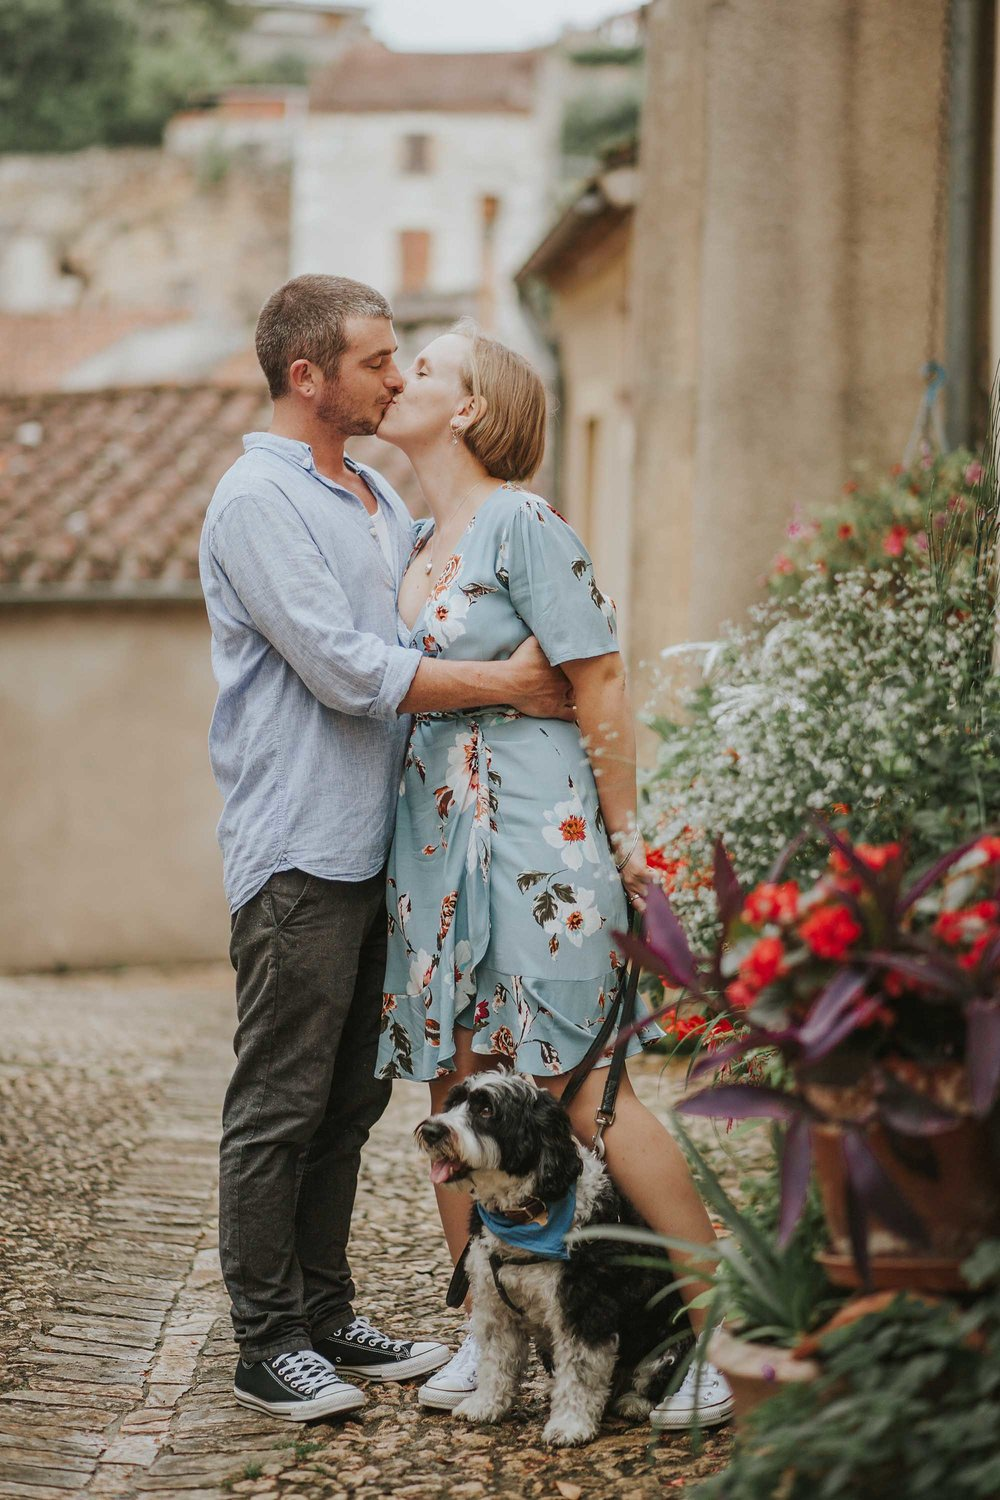 Wedding photographer in Dordogne